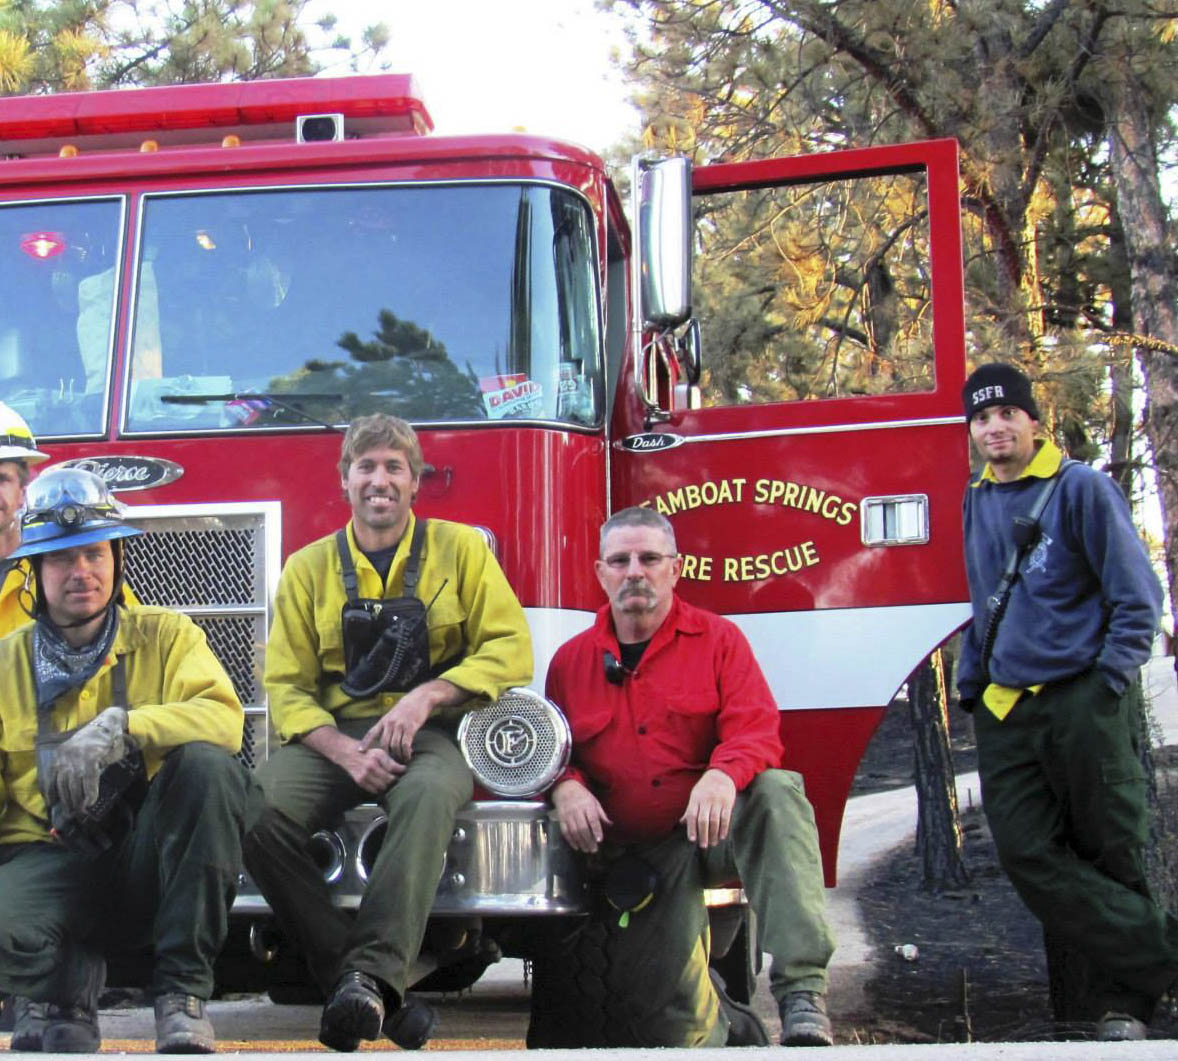 Routt County firefighters, from left, Linas Vaitkus, Leighton White, Chuck Wisecup and Tony DeRisio returned this week after five days fighting the Black Forest Fire in Colorado Springs.